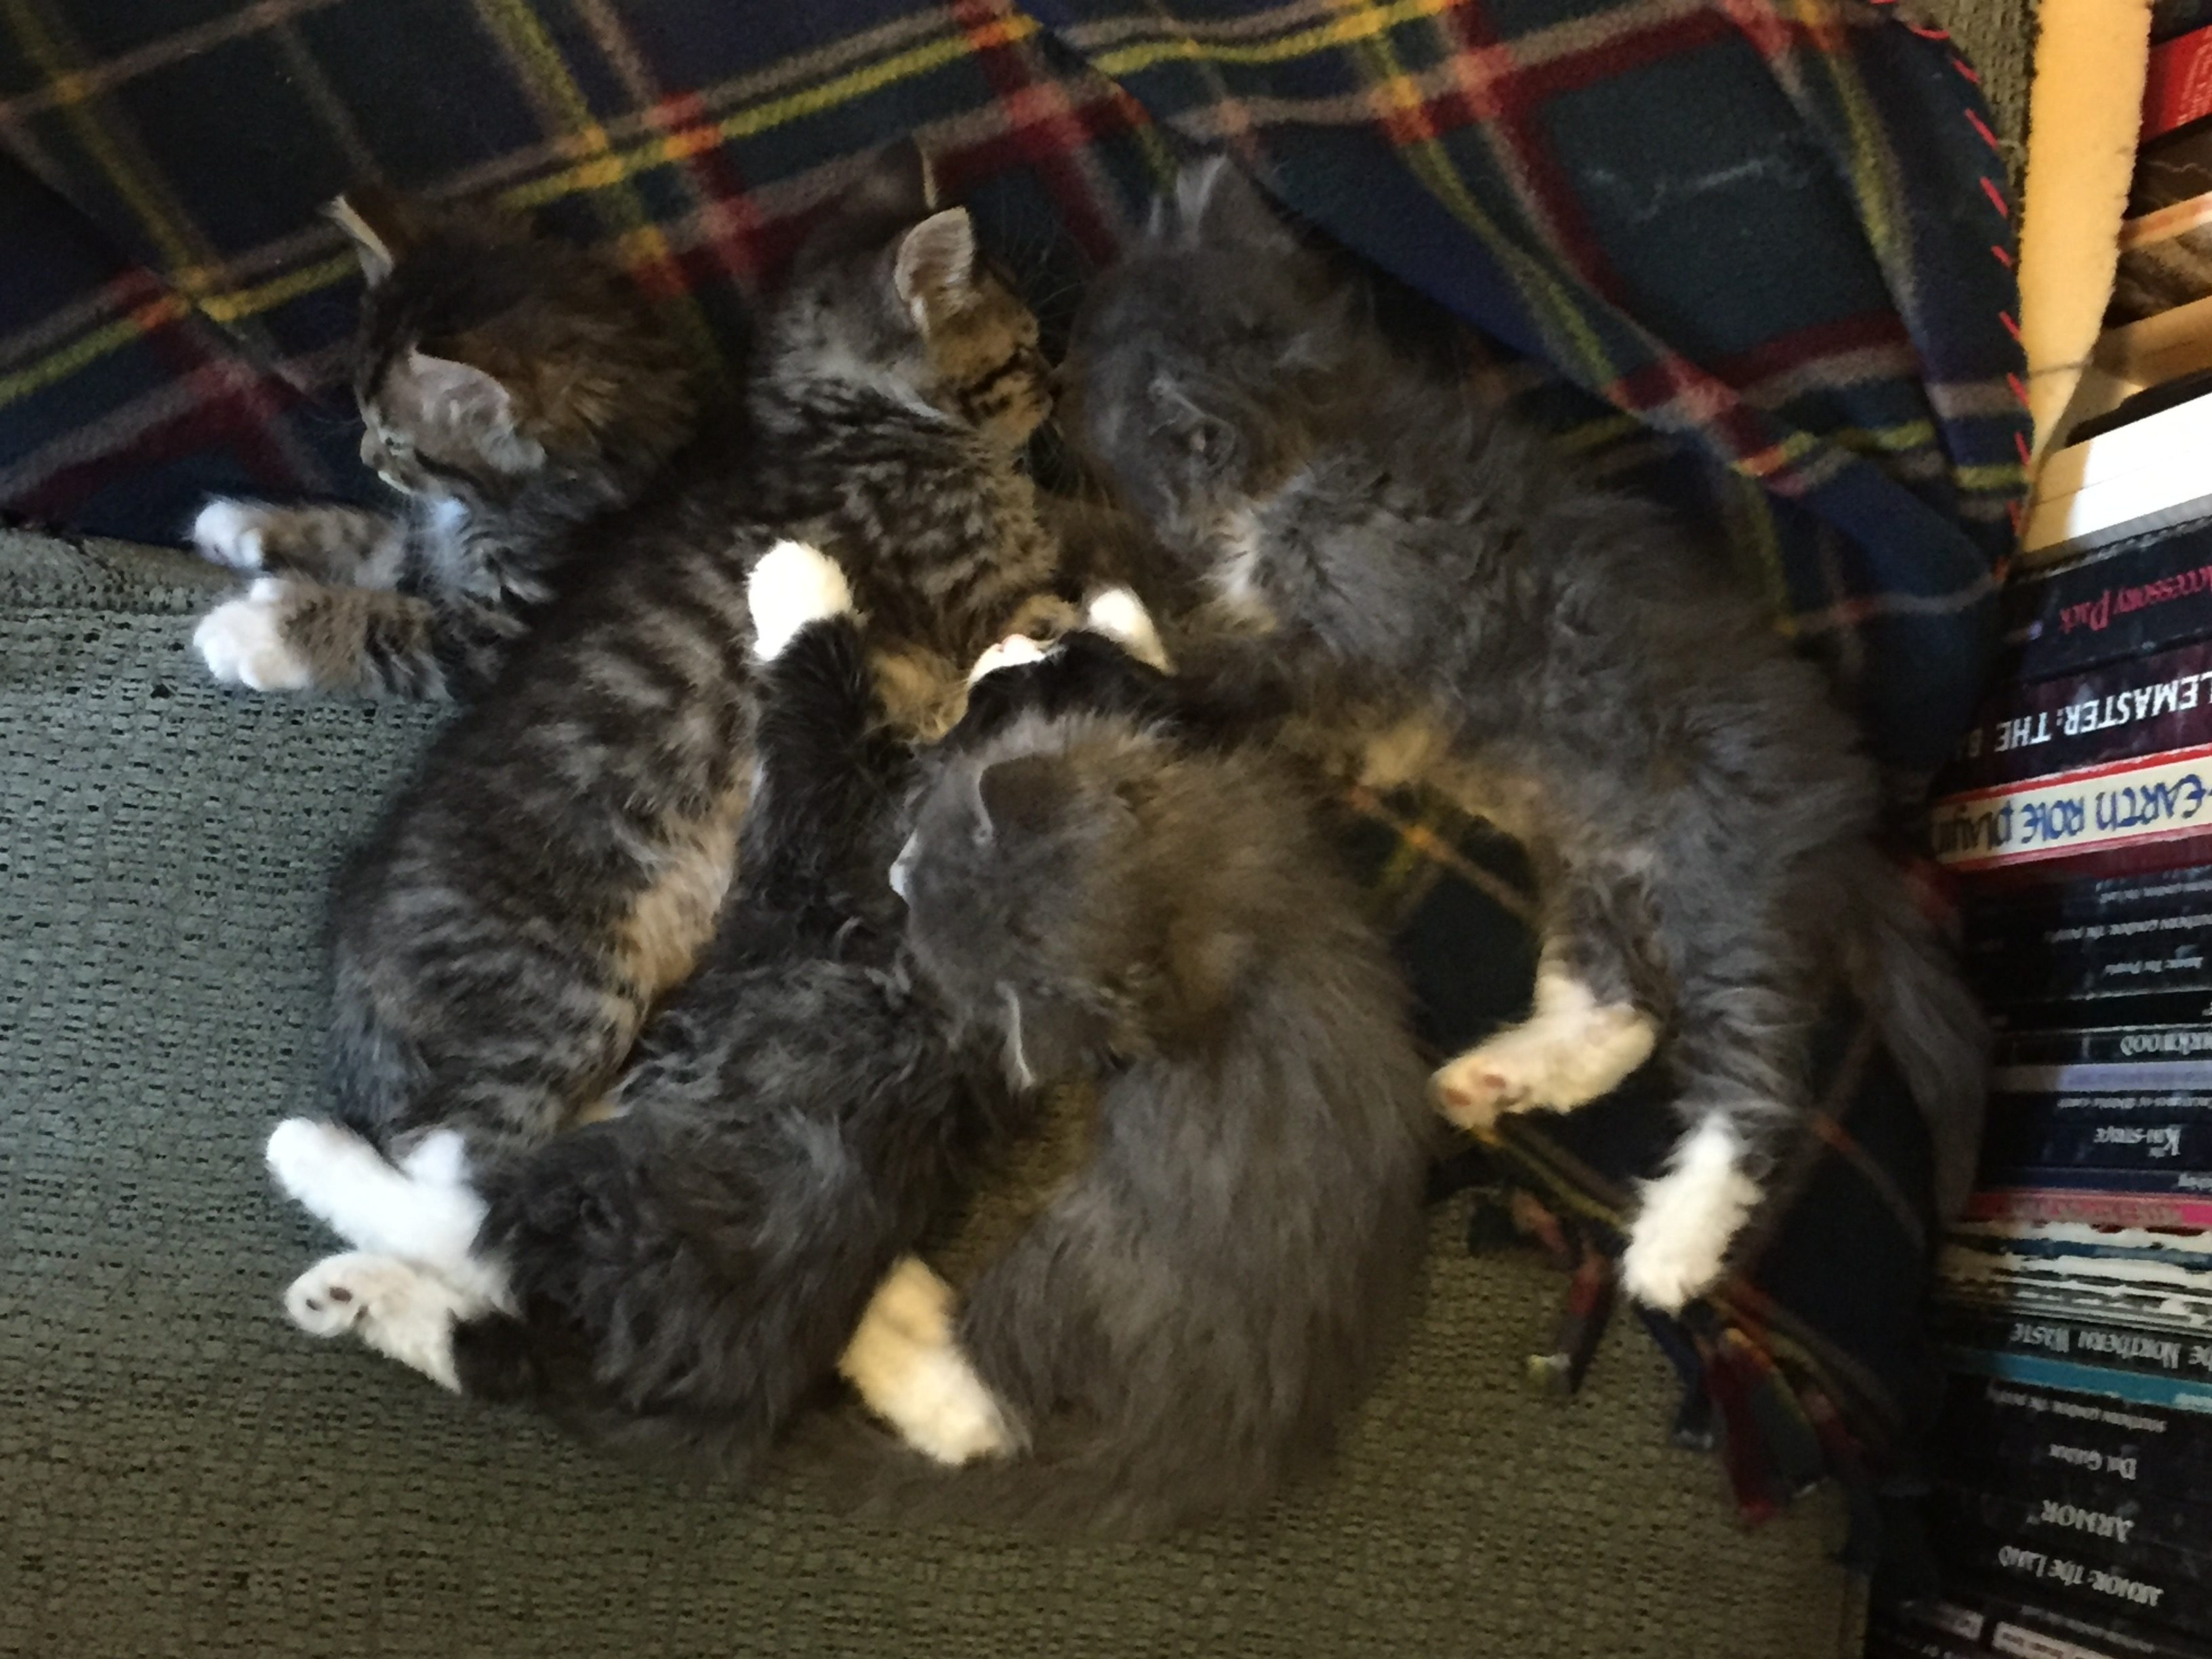 The Puppy Kittens